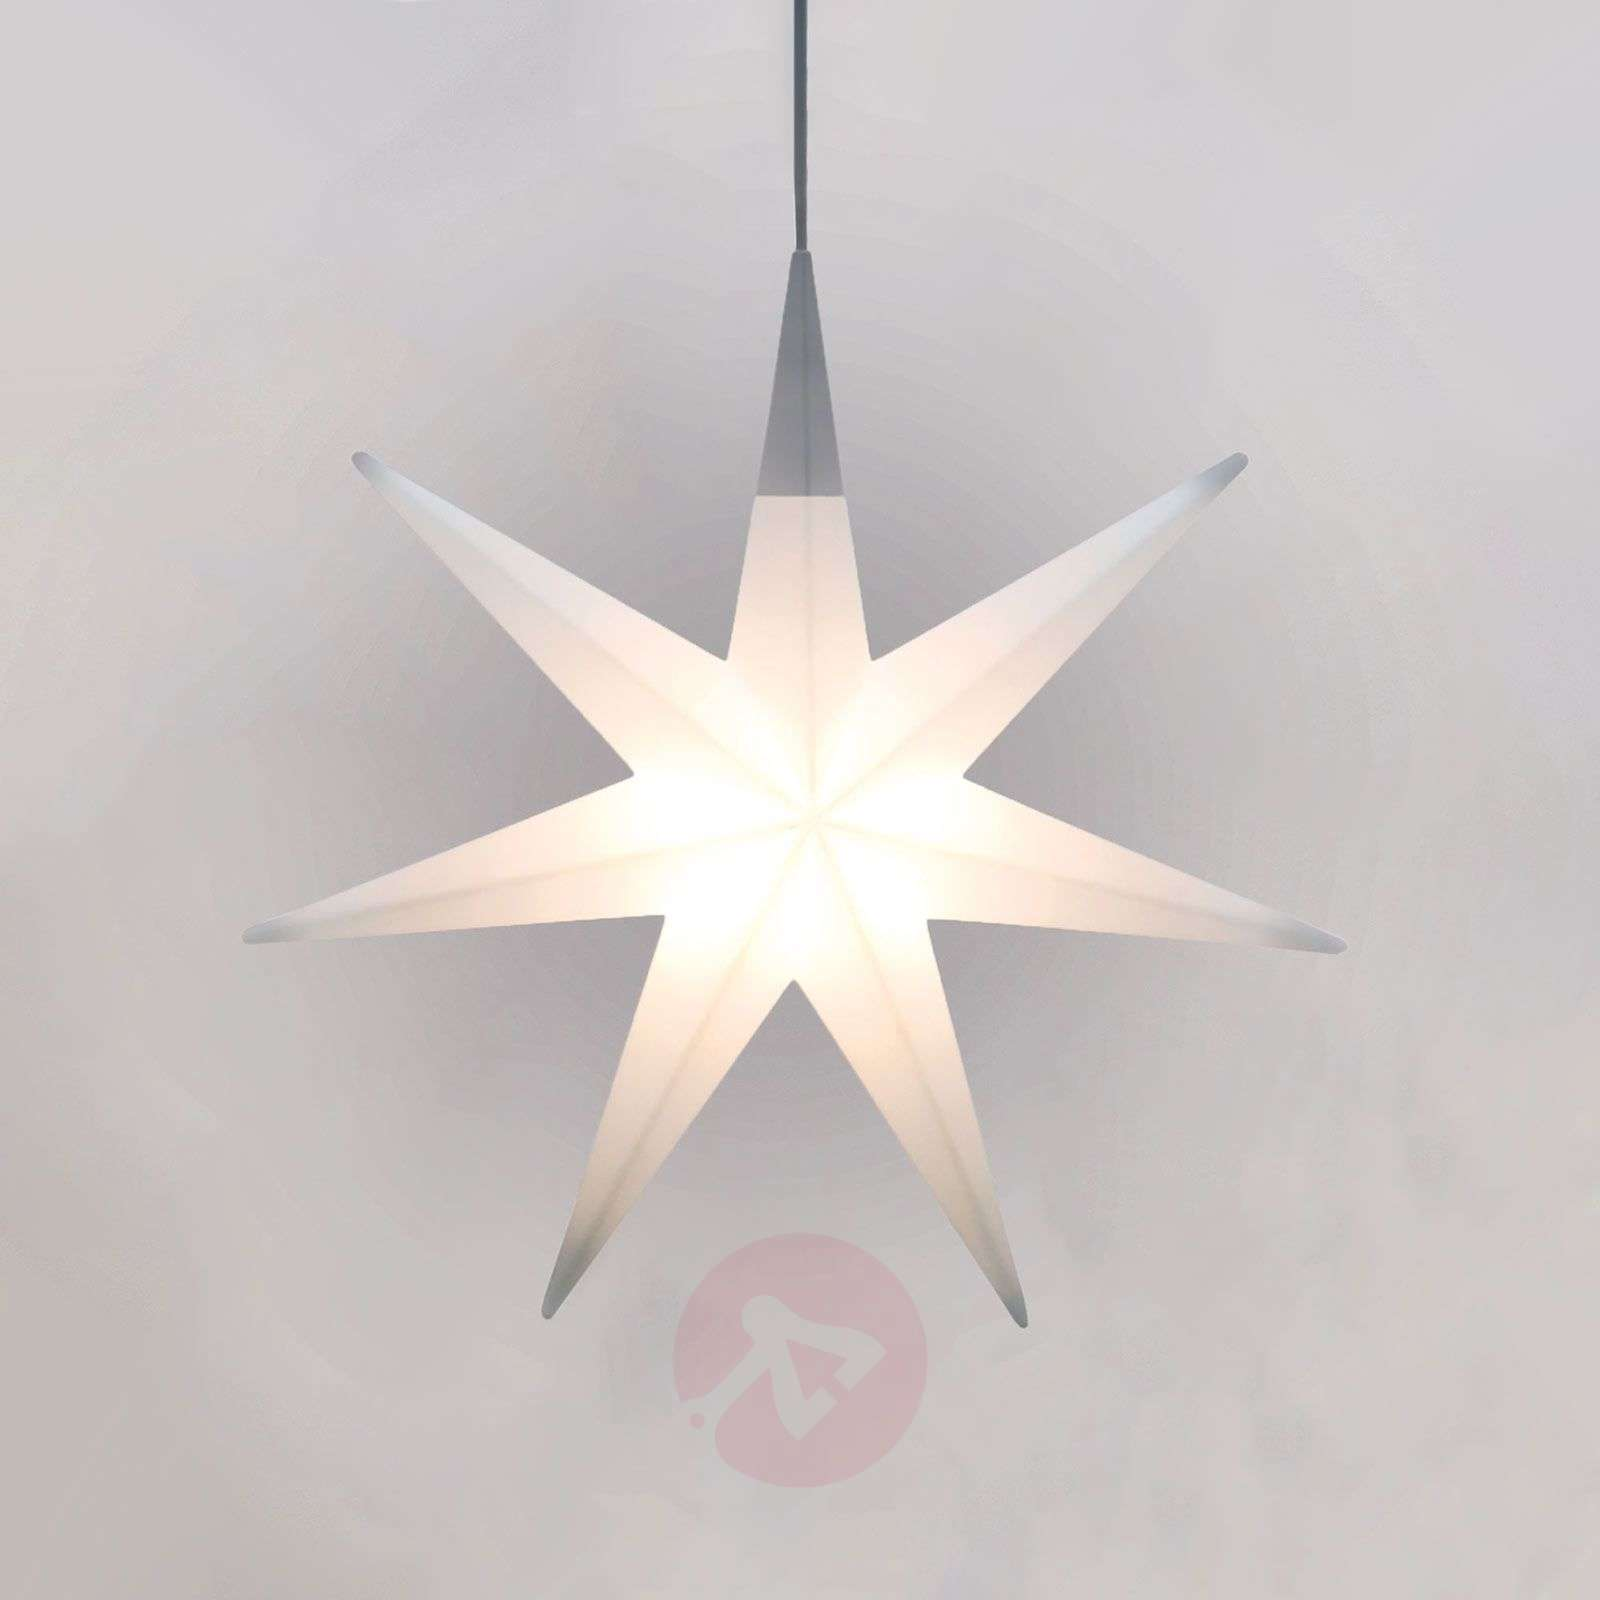 LED-kerstster Shining Glory Star-1004155X-01